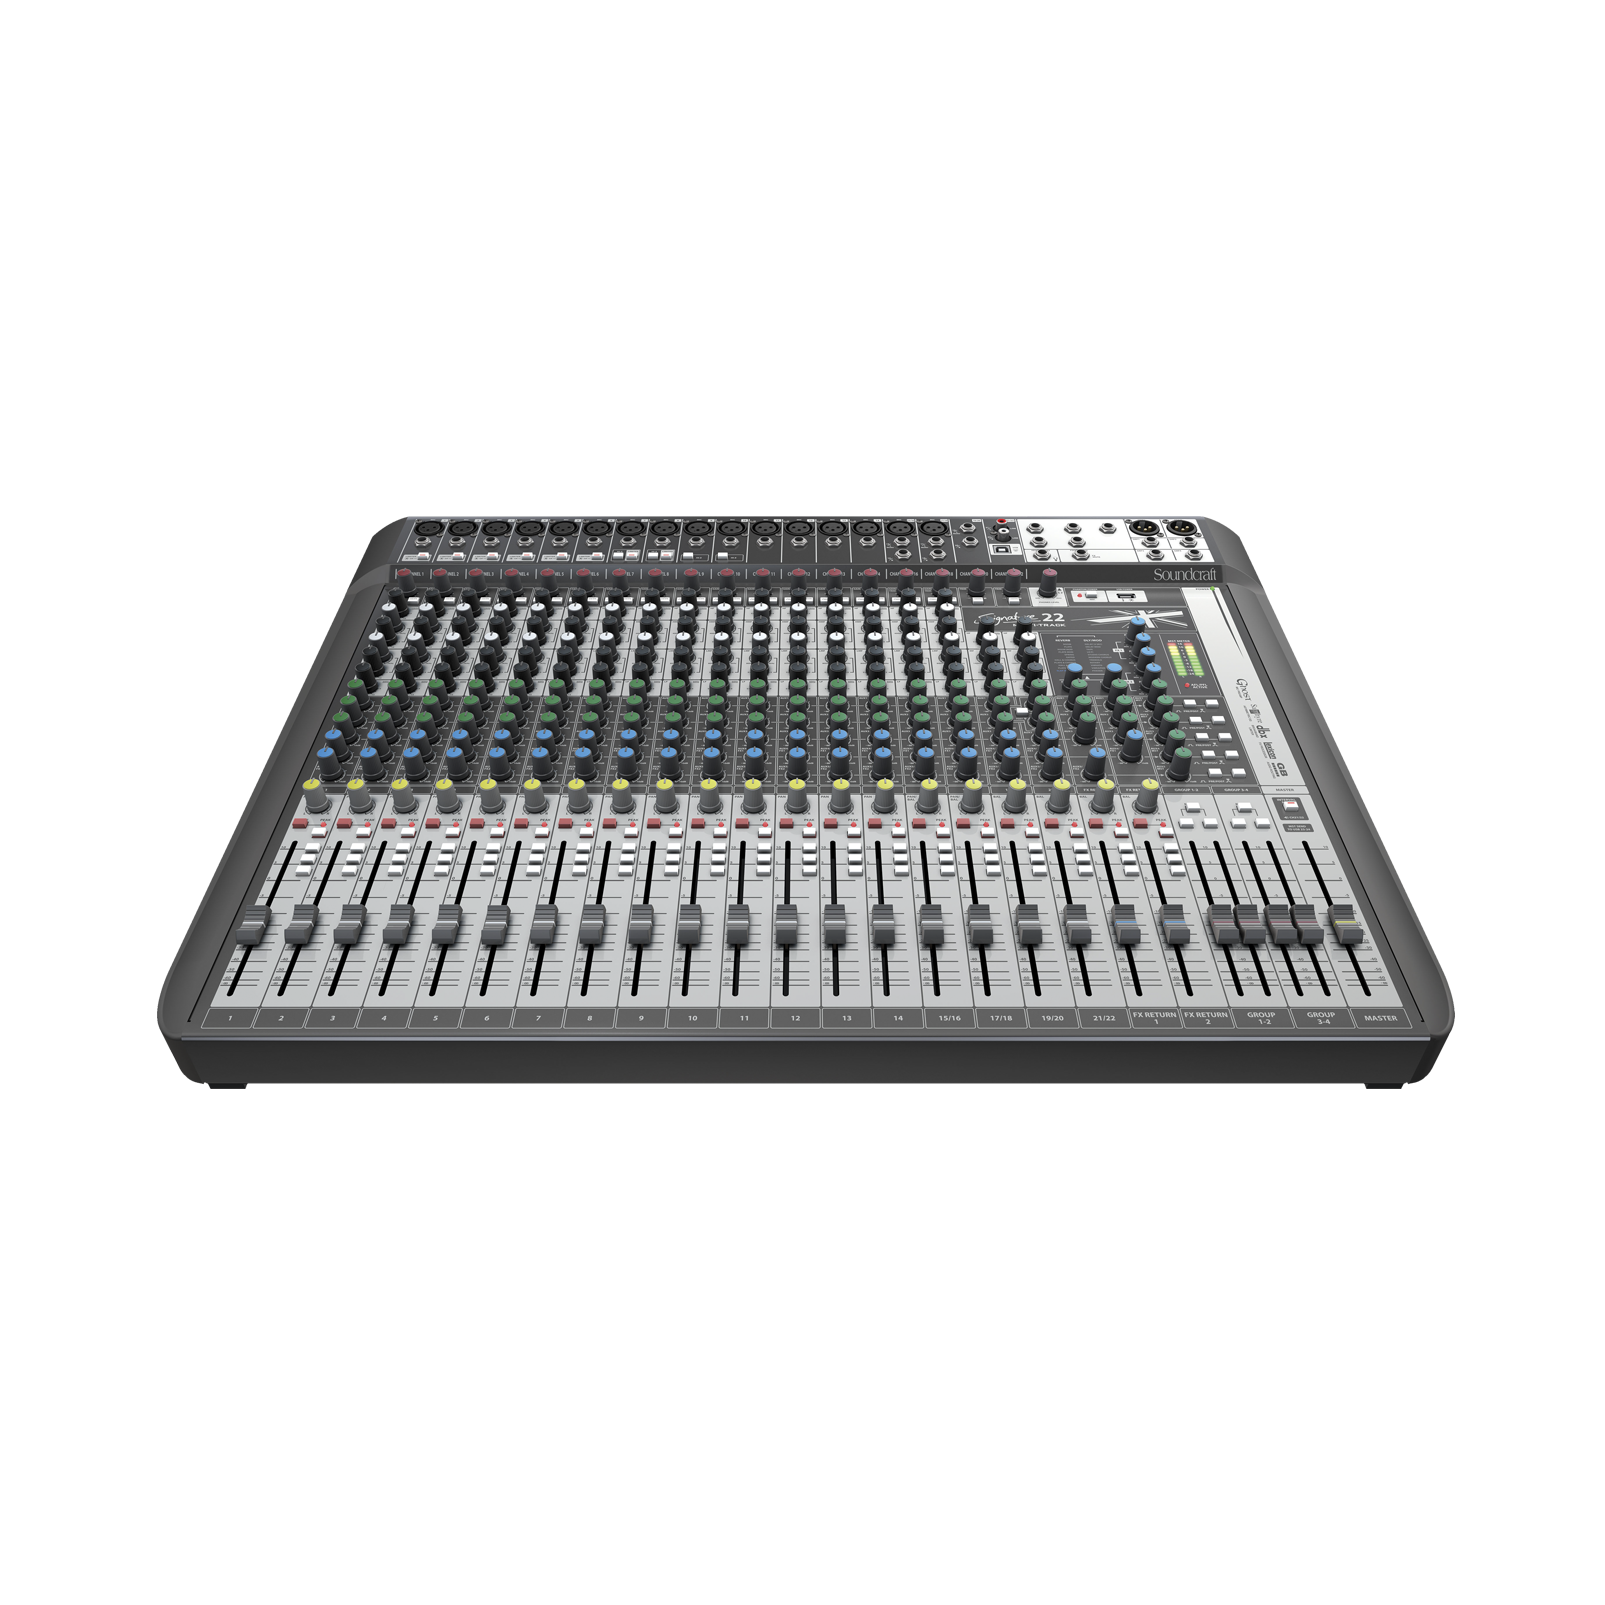 Signature 22 MTK - Black - 22-input analogue mixer with onboard effects - Detailshot 3